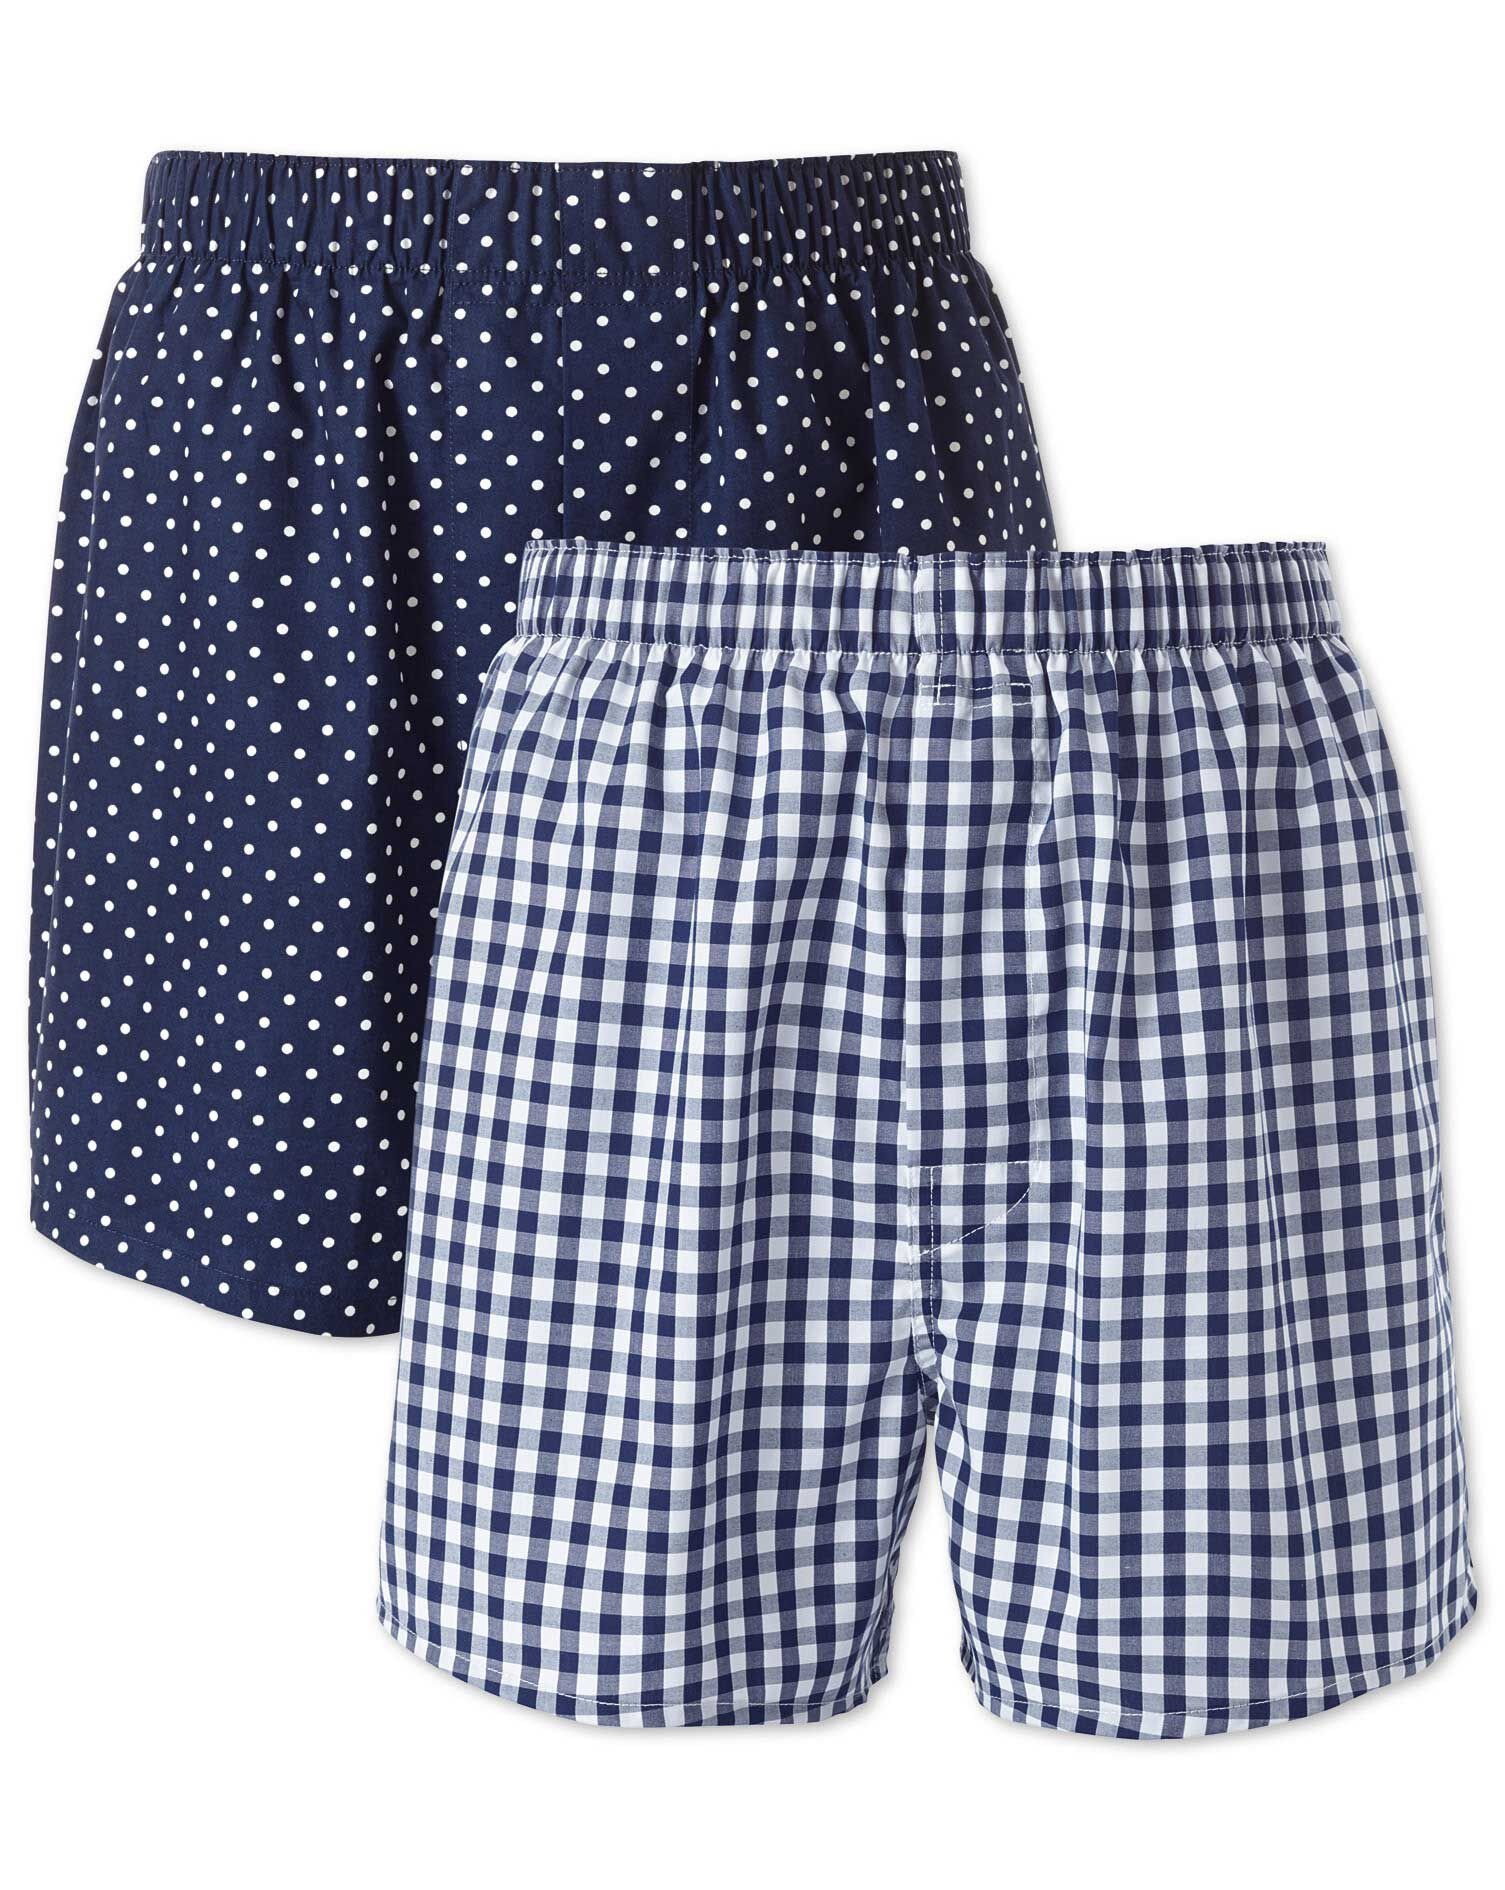 Navy 2 Pack Boxers Size XS by Charles Tyrwhitt